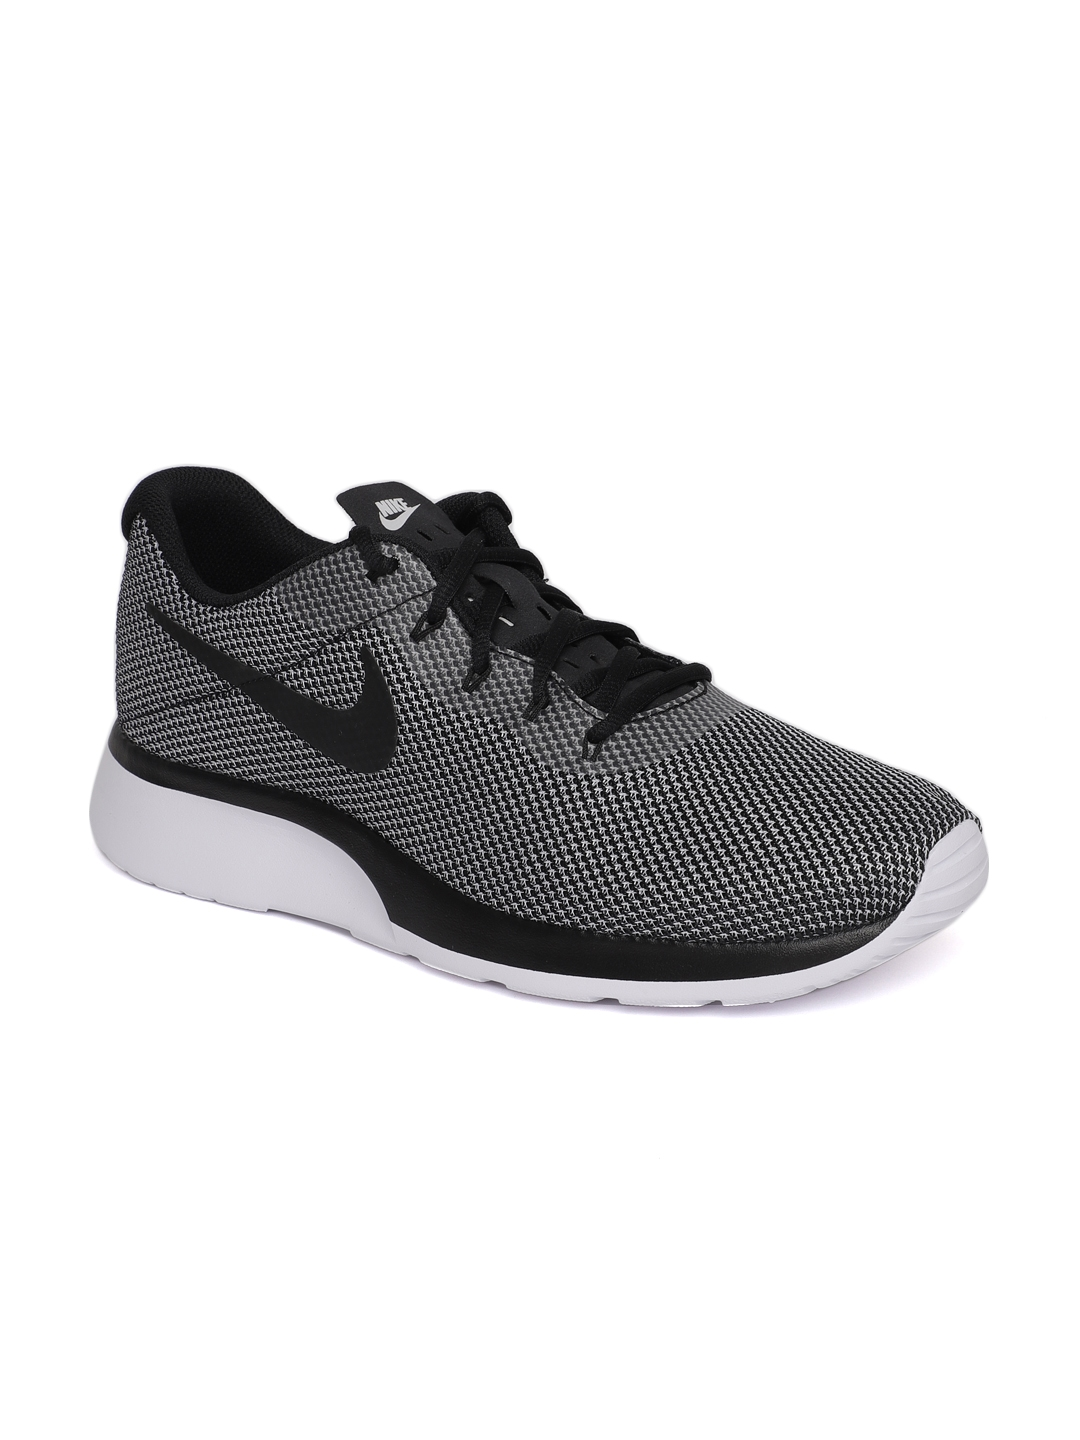 Sneakers Black Tanjun Racer amp; For Casual Nike Shoes White Men Buy F0xqRwfE